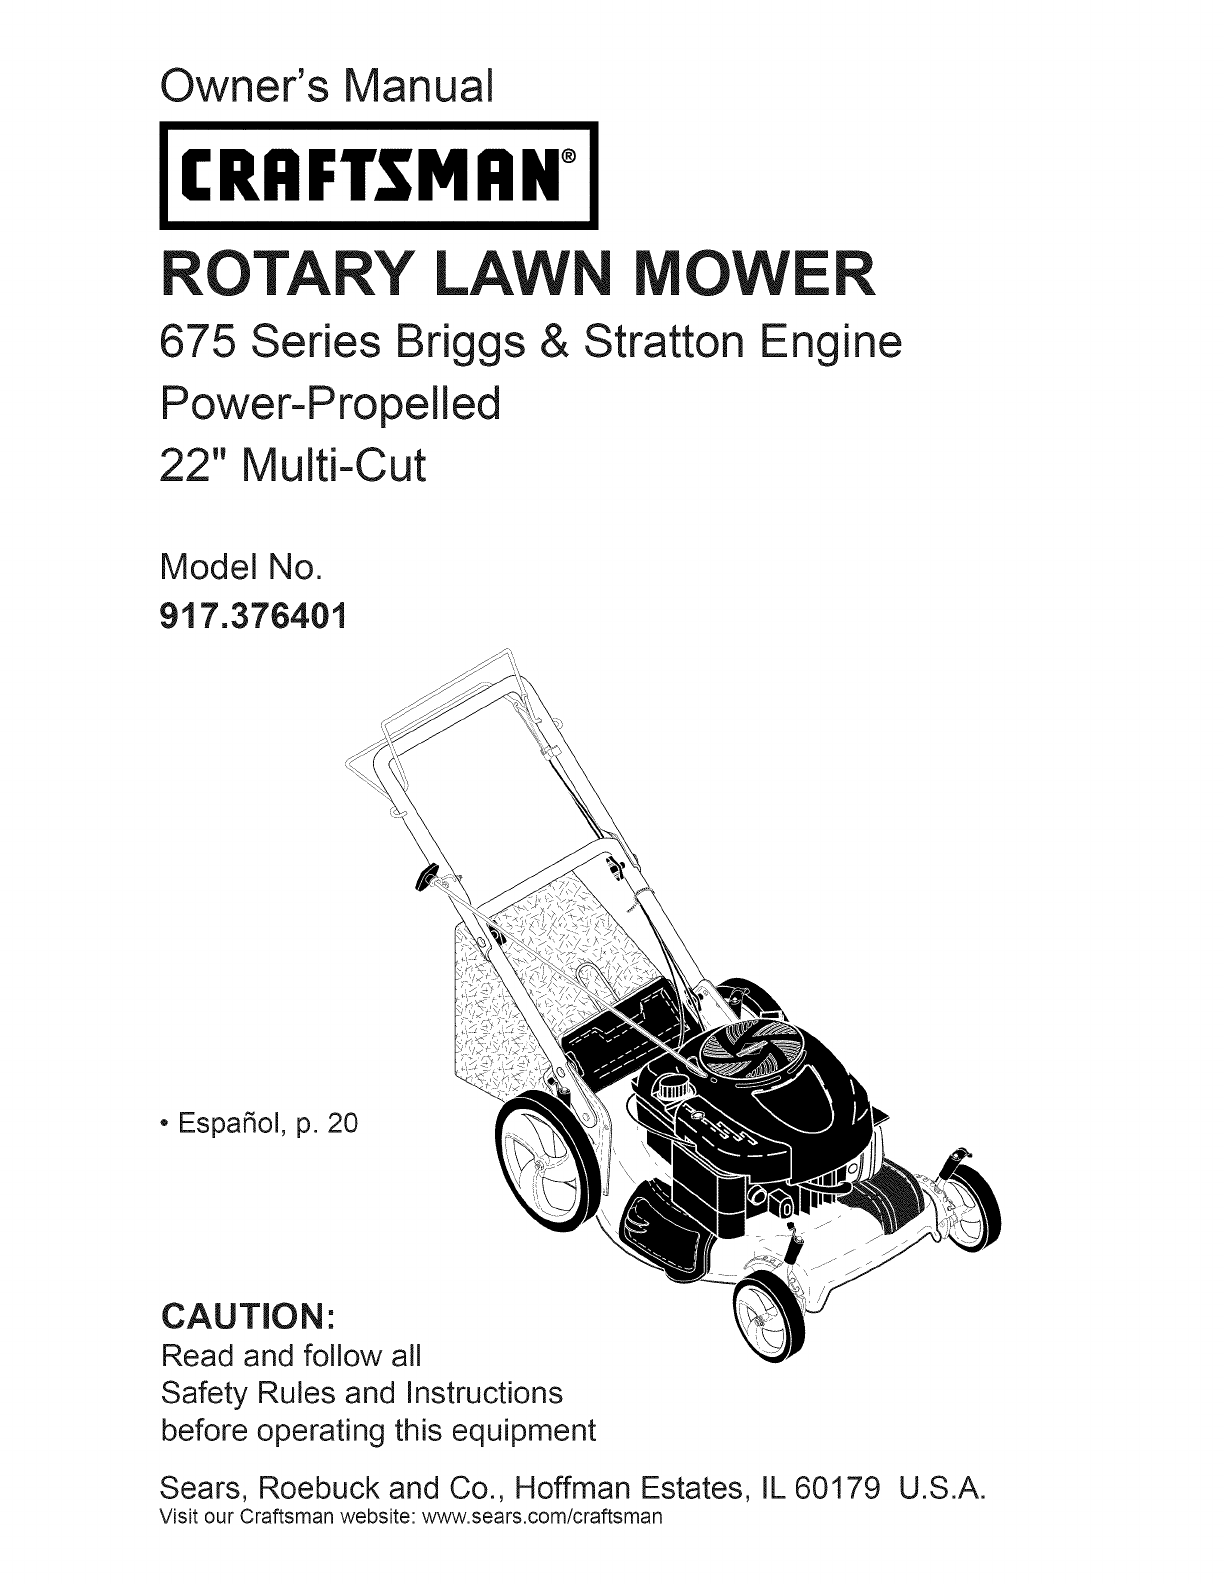 Craftsman Lawn Mower 37640 User Guide John Deere Walk Behind Wiring Diagram